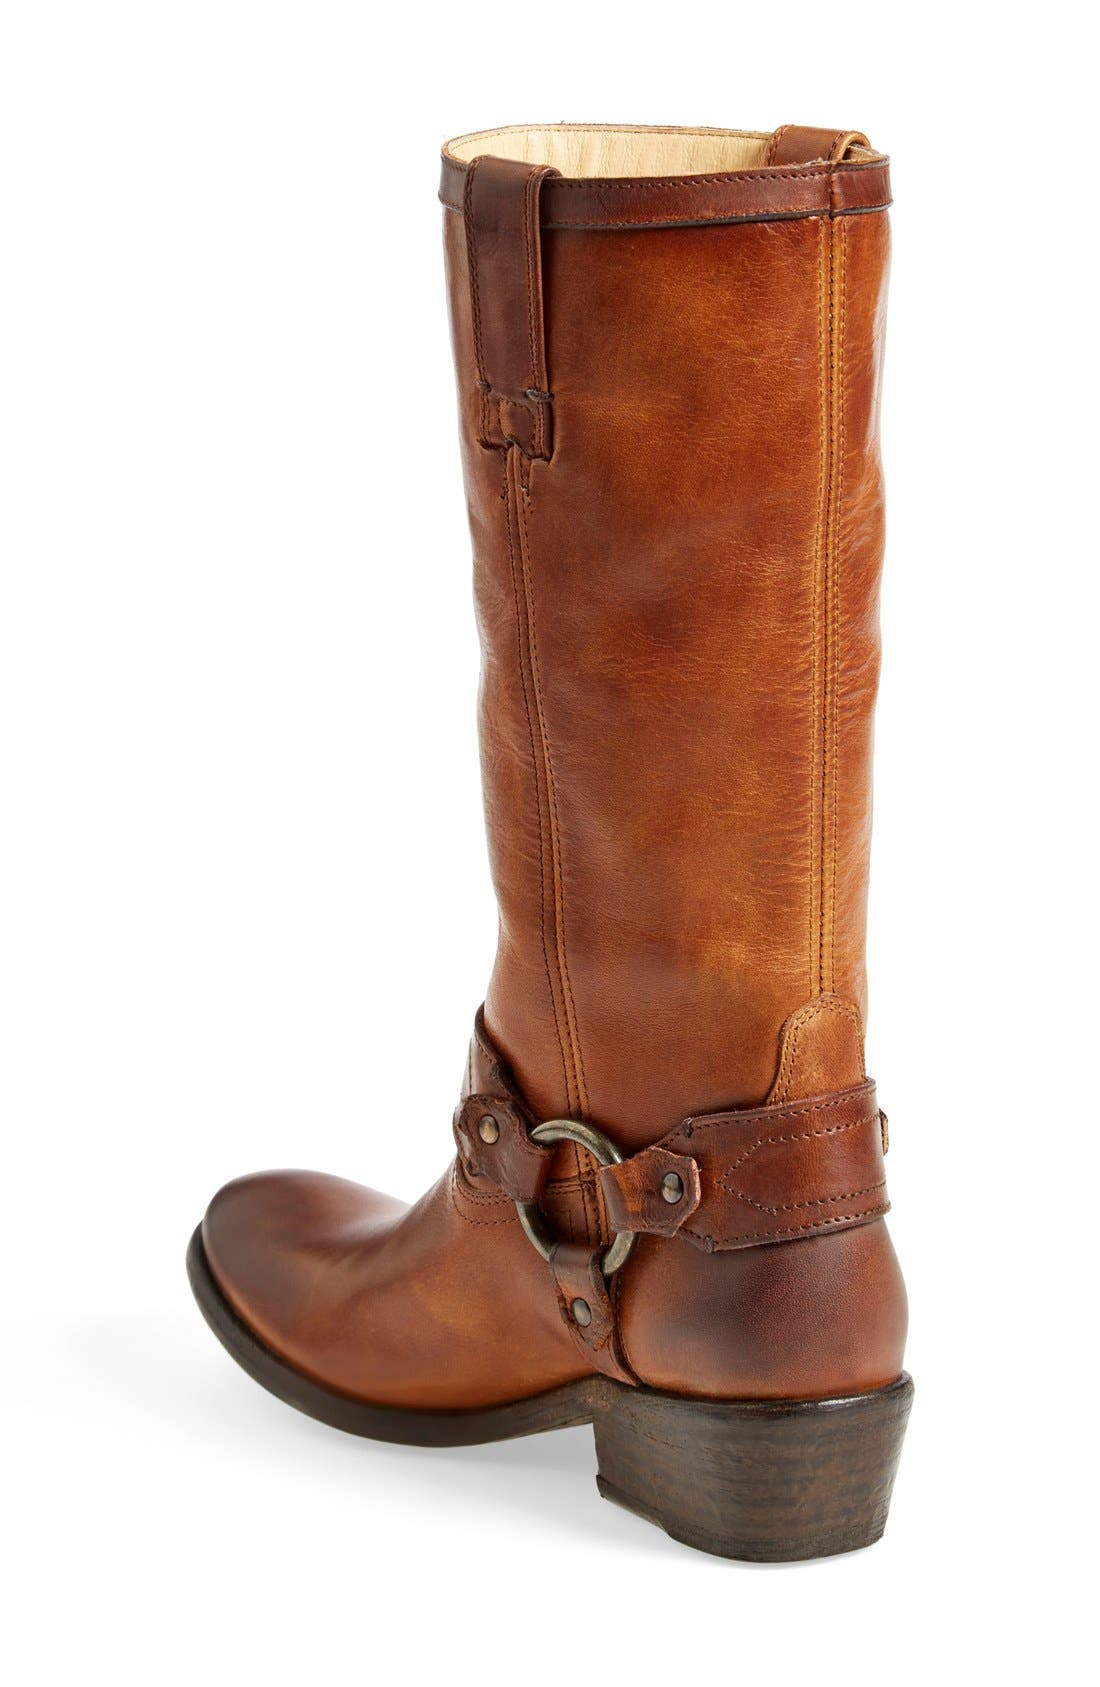 'Carson Harness' Western Mid Calf Riding Boot,                             Alternate thumbnail 2, color,                             Cognac Leather